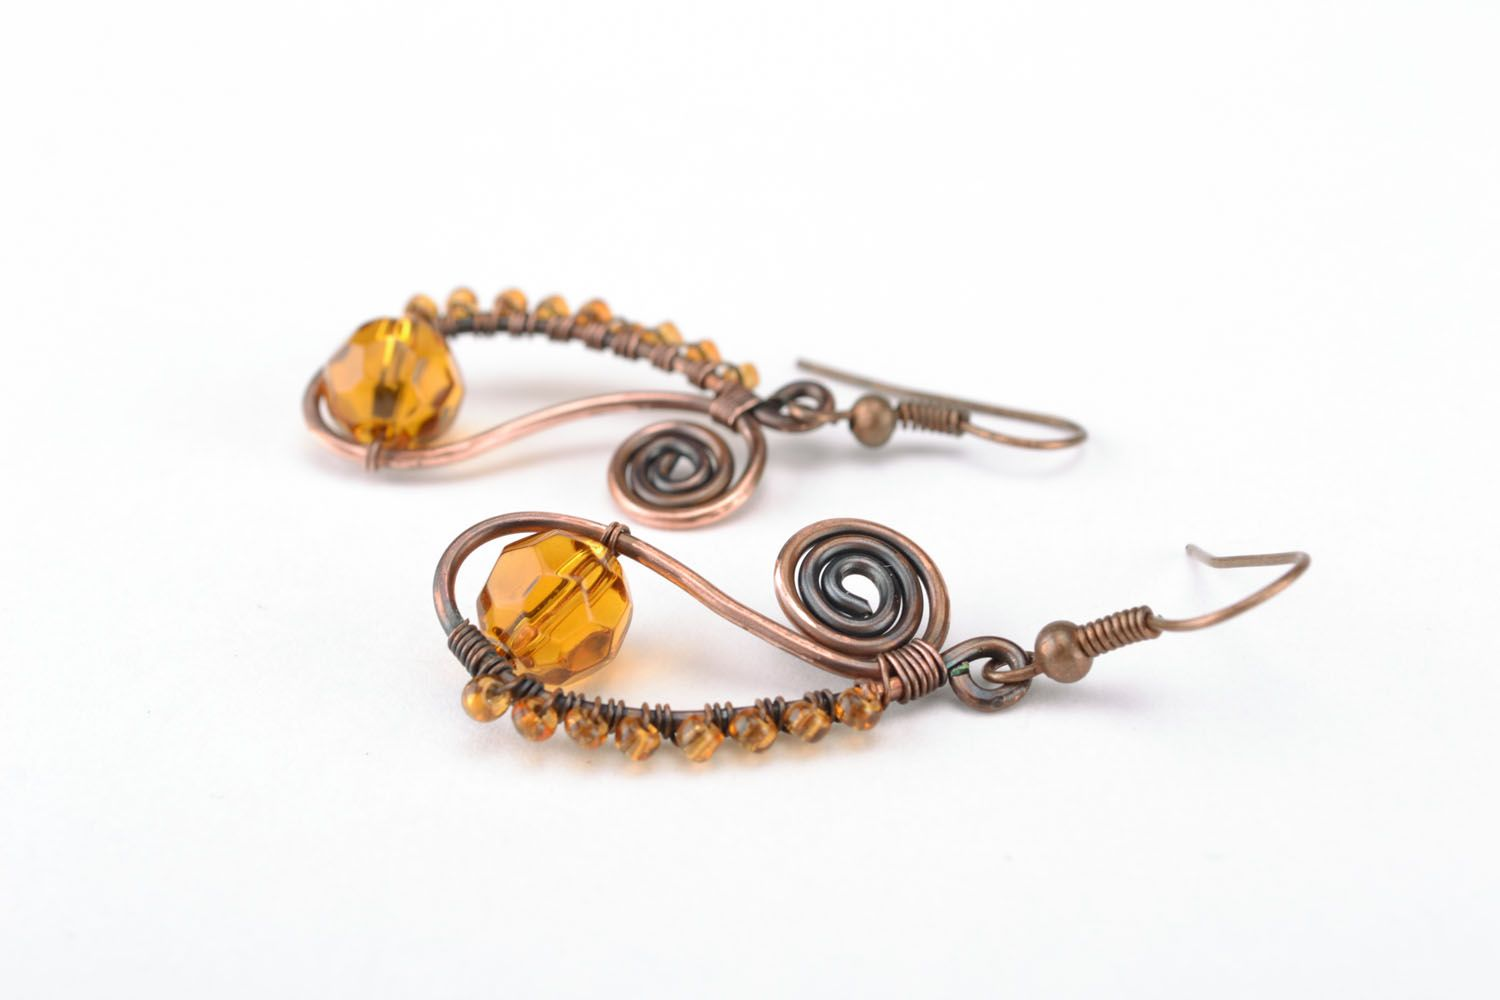 Earrings made of copper wire photo 3